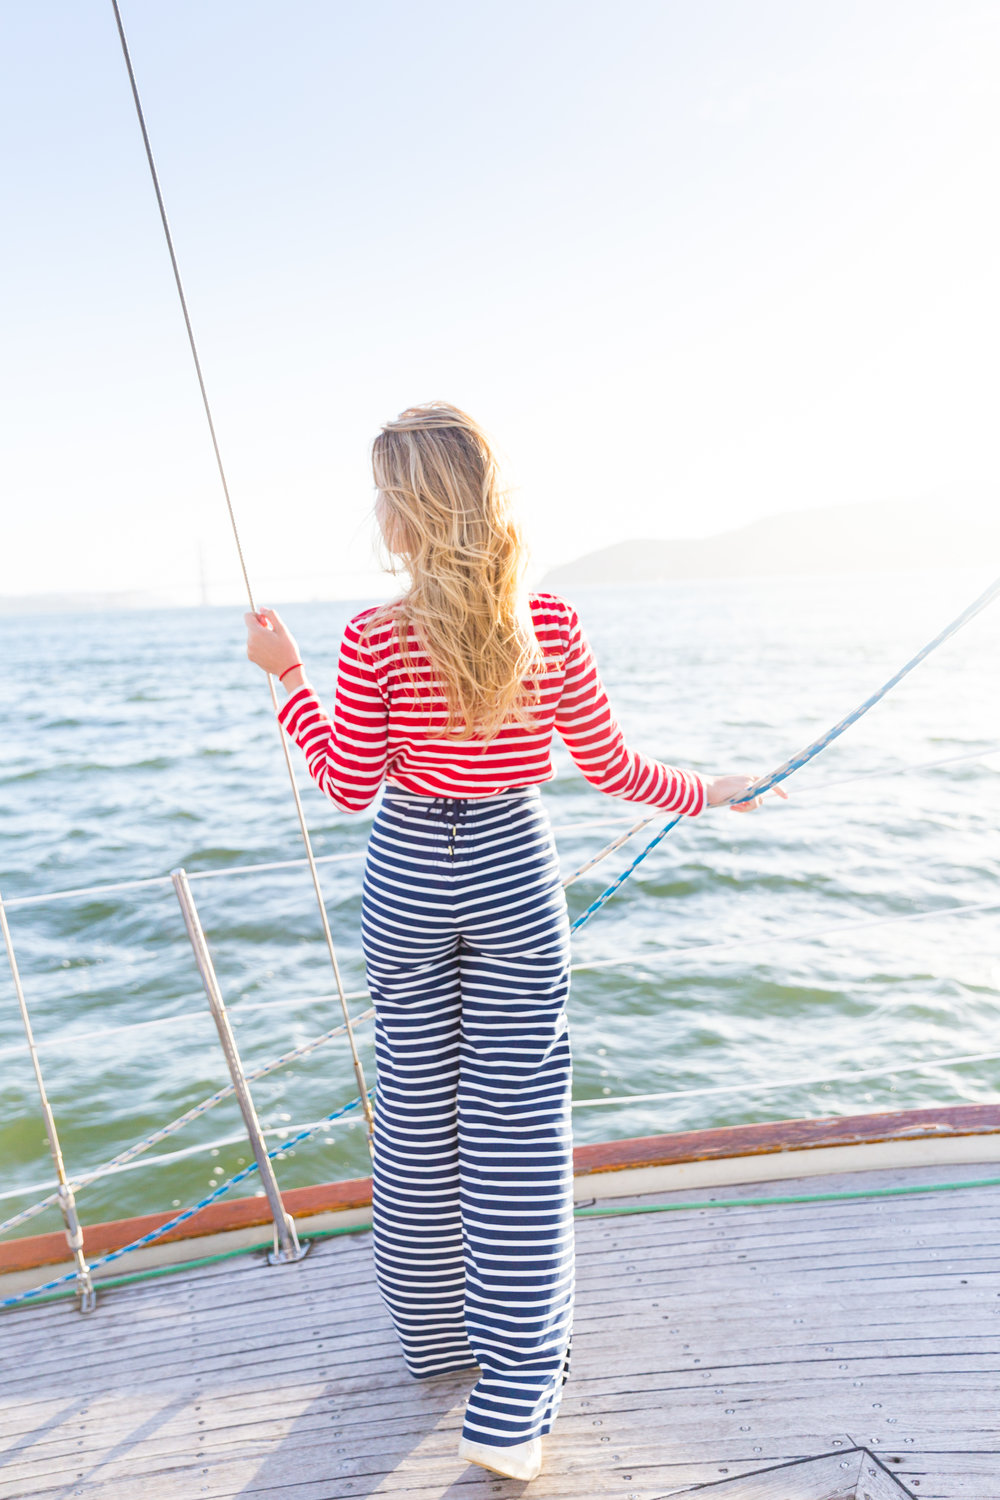 Striped Nautical Sunset Sail Outfit San Francisco-14.jpg